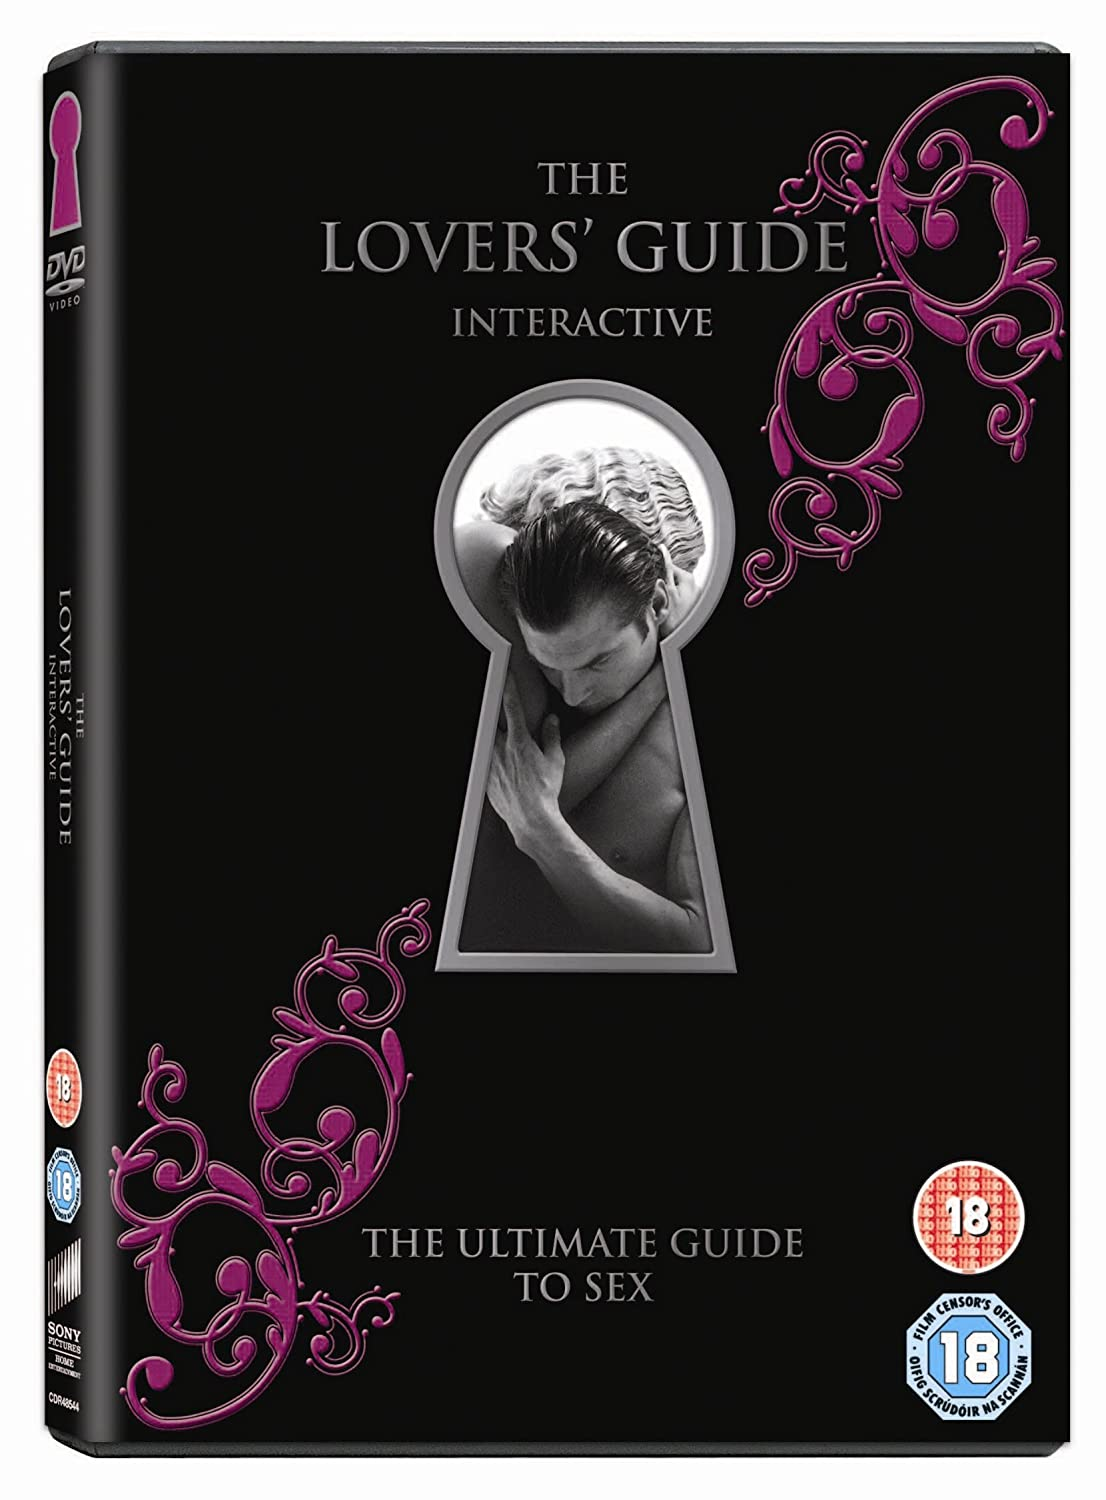 The Lovers' Guide Interactive - The Ultimate Guide To Sex DVD:  Amazon.co.uk: Tom Brown, Robert Page, Colin Brewer, Paula Hall, Dr Beverley  Whipple, ...